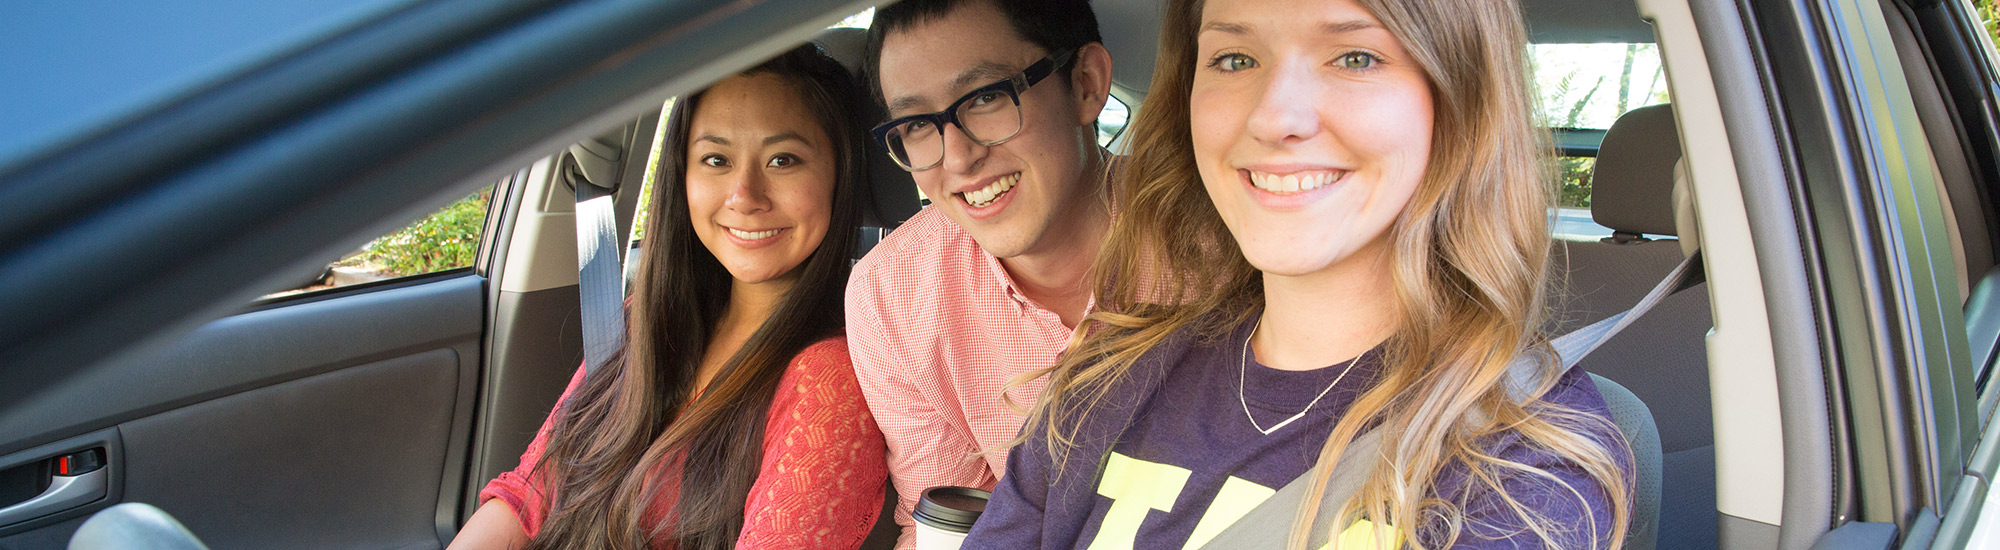 UW students using seatbelts